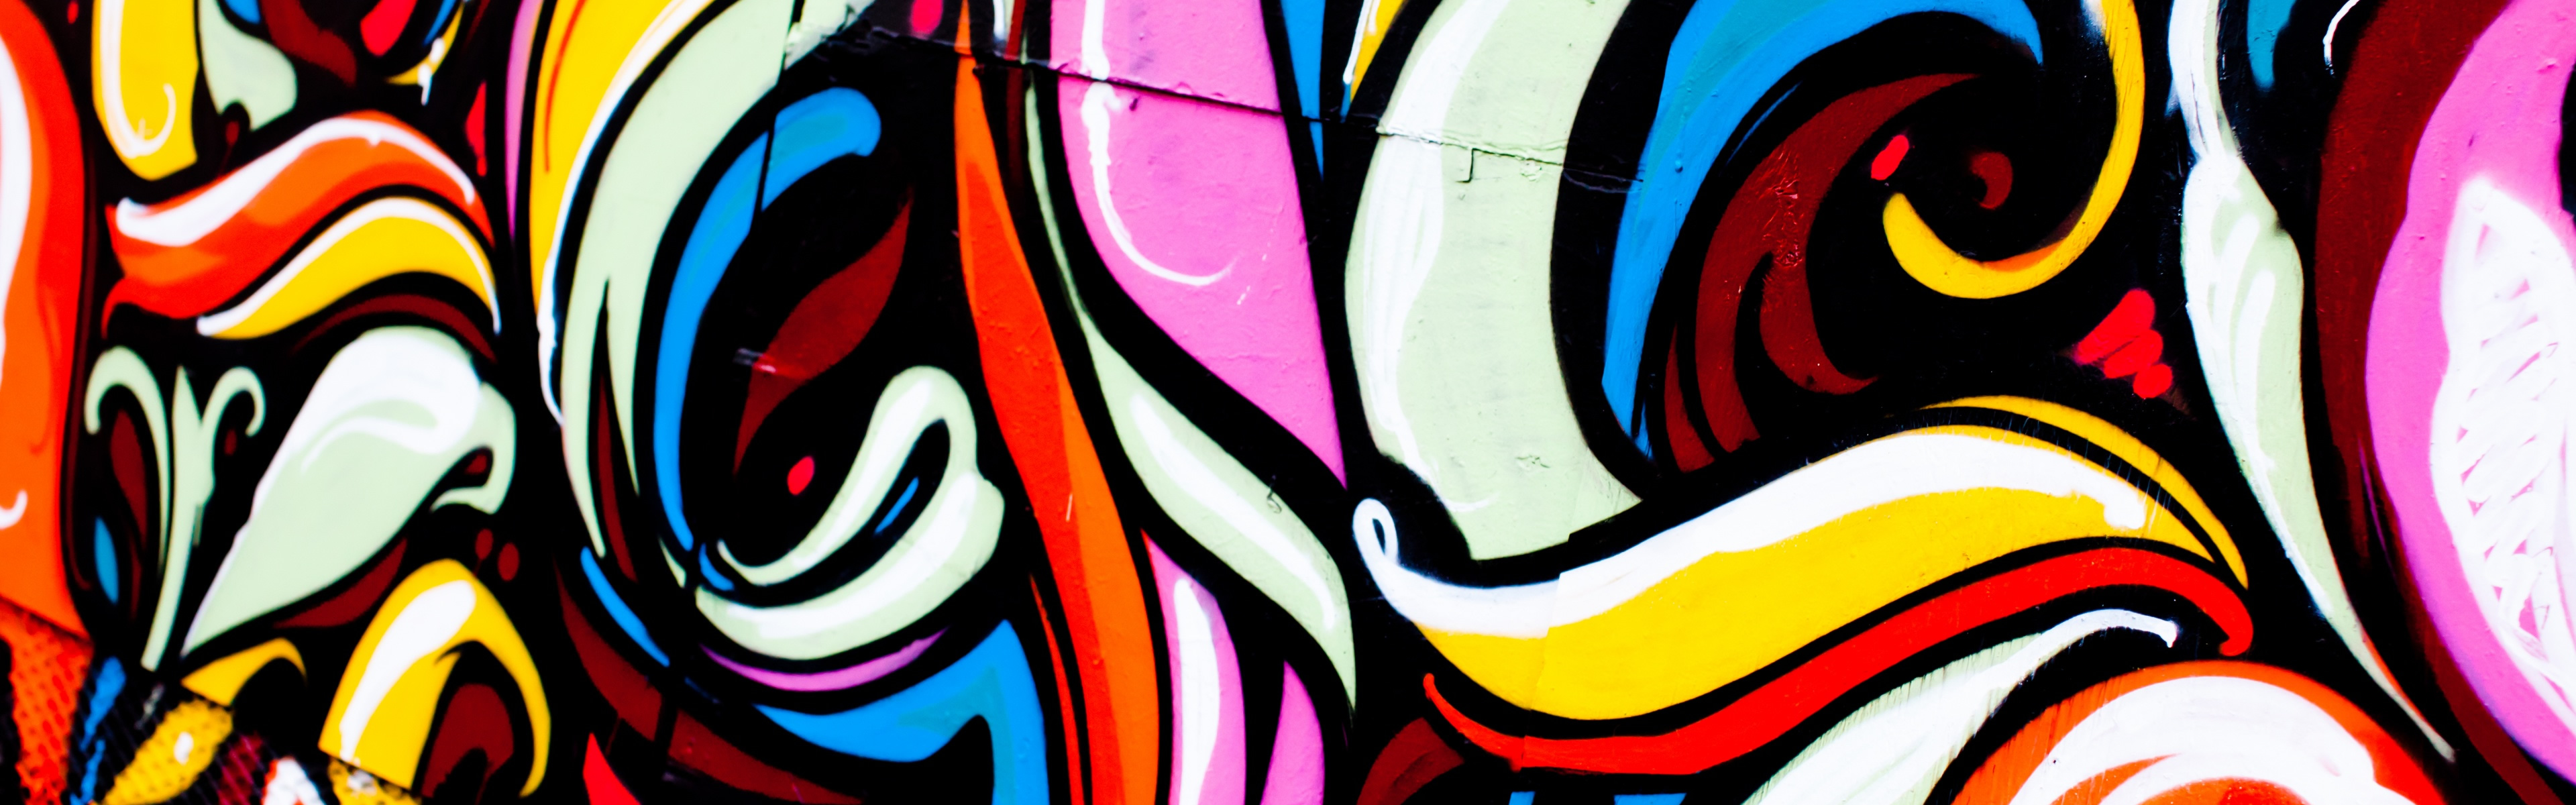 <b>Graffiti wallpaper</b> | 3840x1200 | #41132